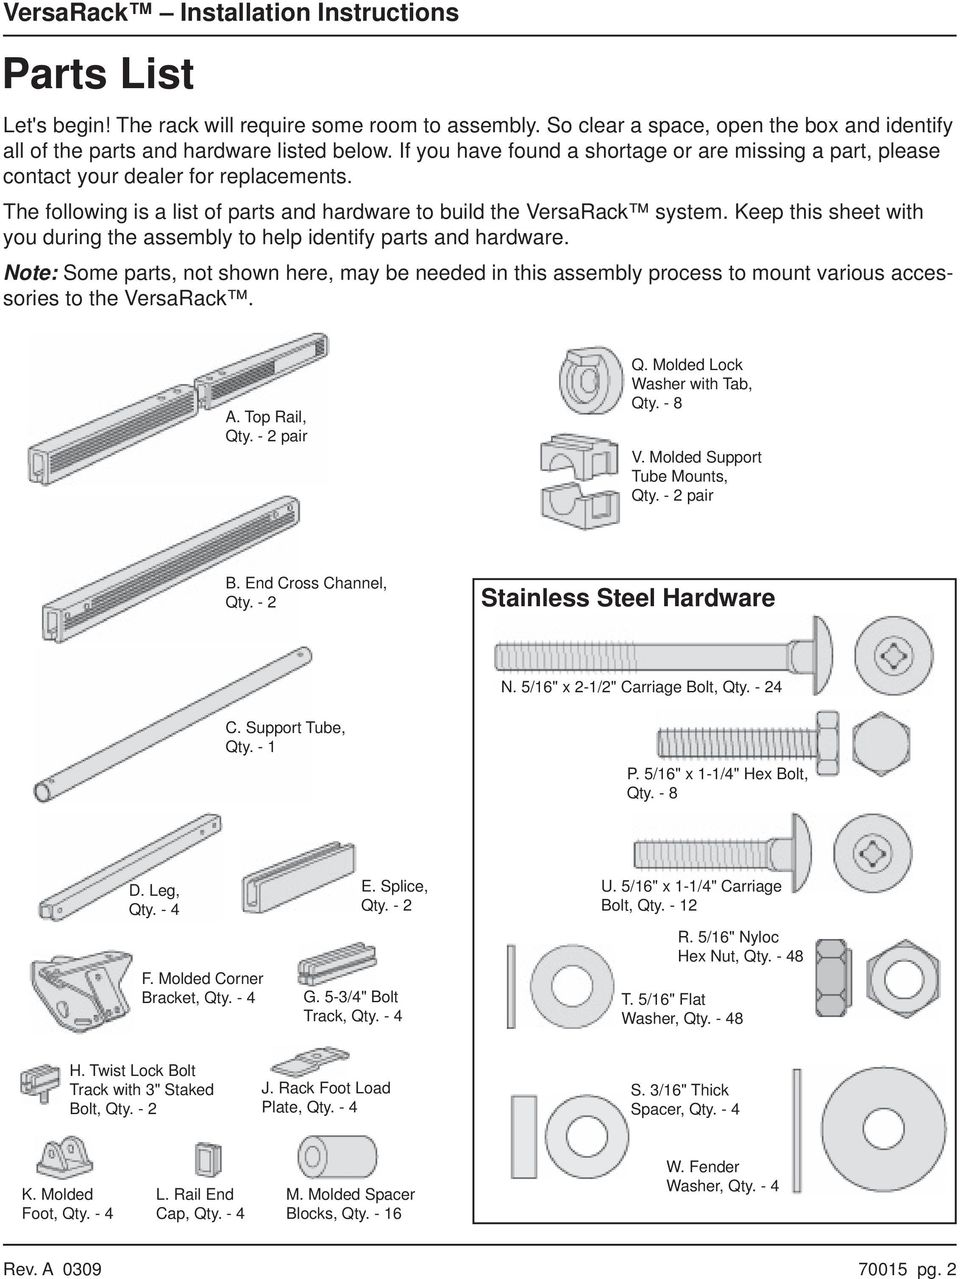 Keep this sheet with you during the assembly to help identify parts and hardware. ote: Some parts, not shown here, may be needed in this assembly process to mount various accessories to the Versaack.